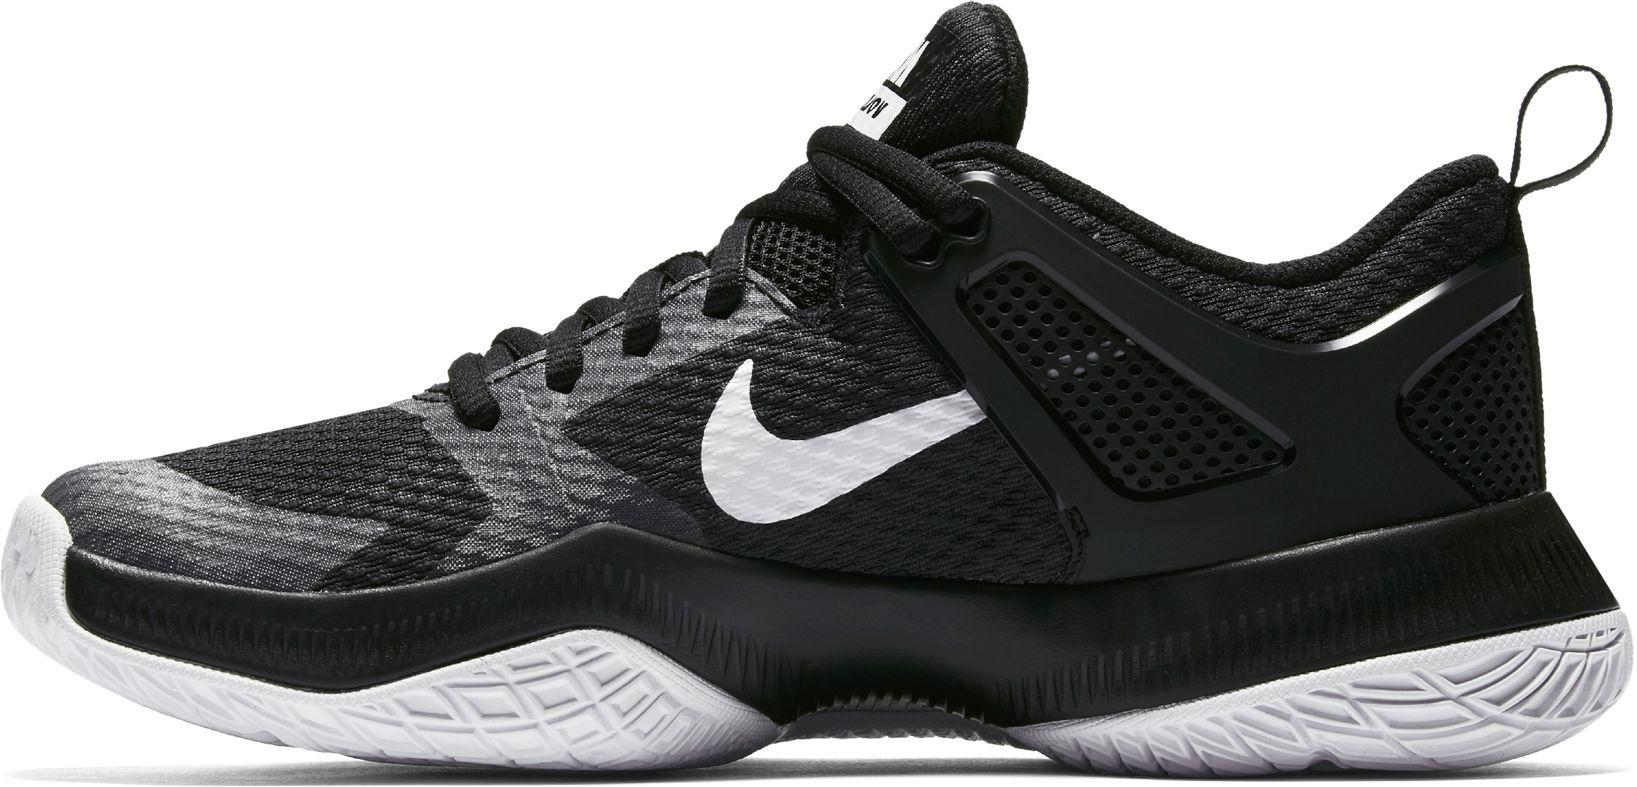 new style ffd85 ae213 Nike - Black Air Zoom Hyperace Volleyball Shoes - Lyst